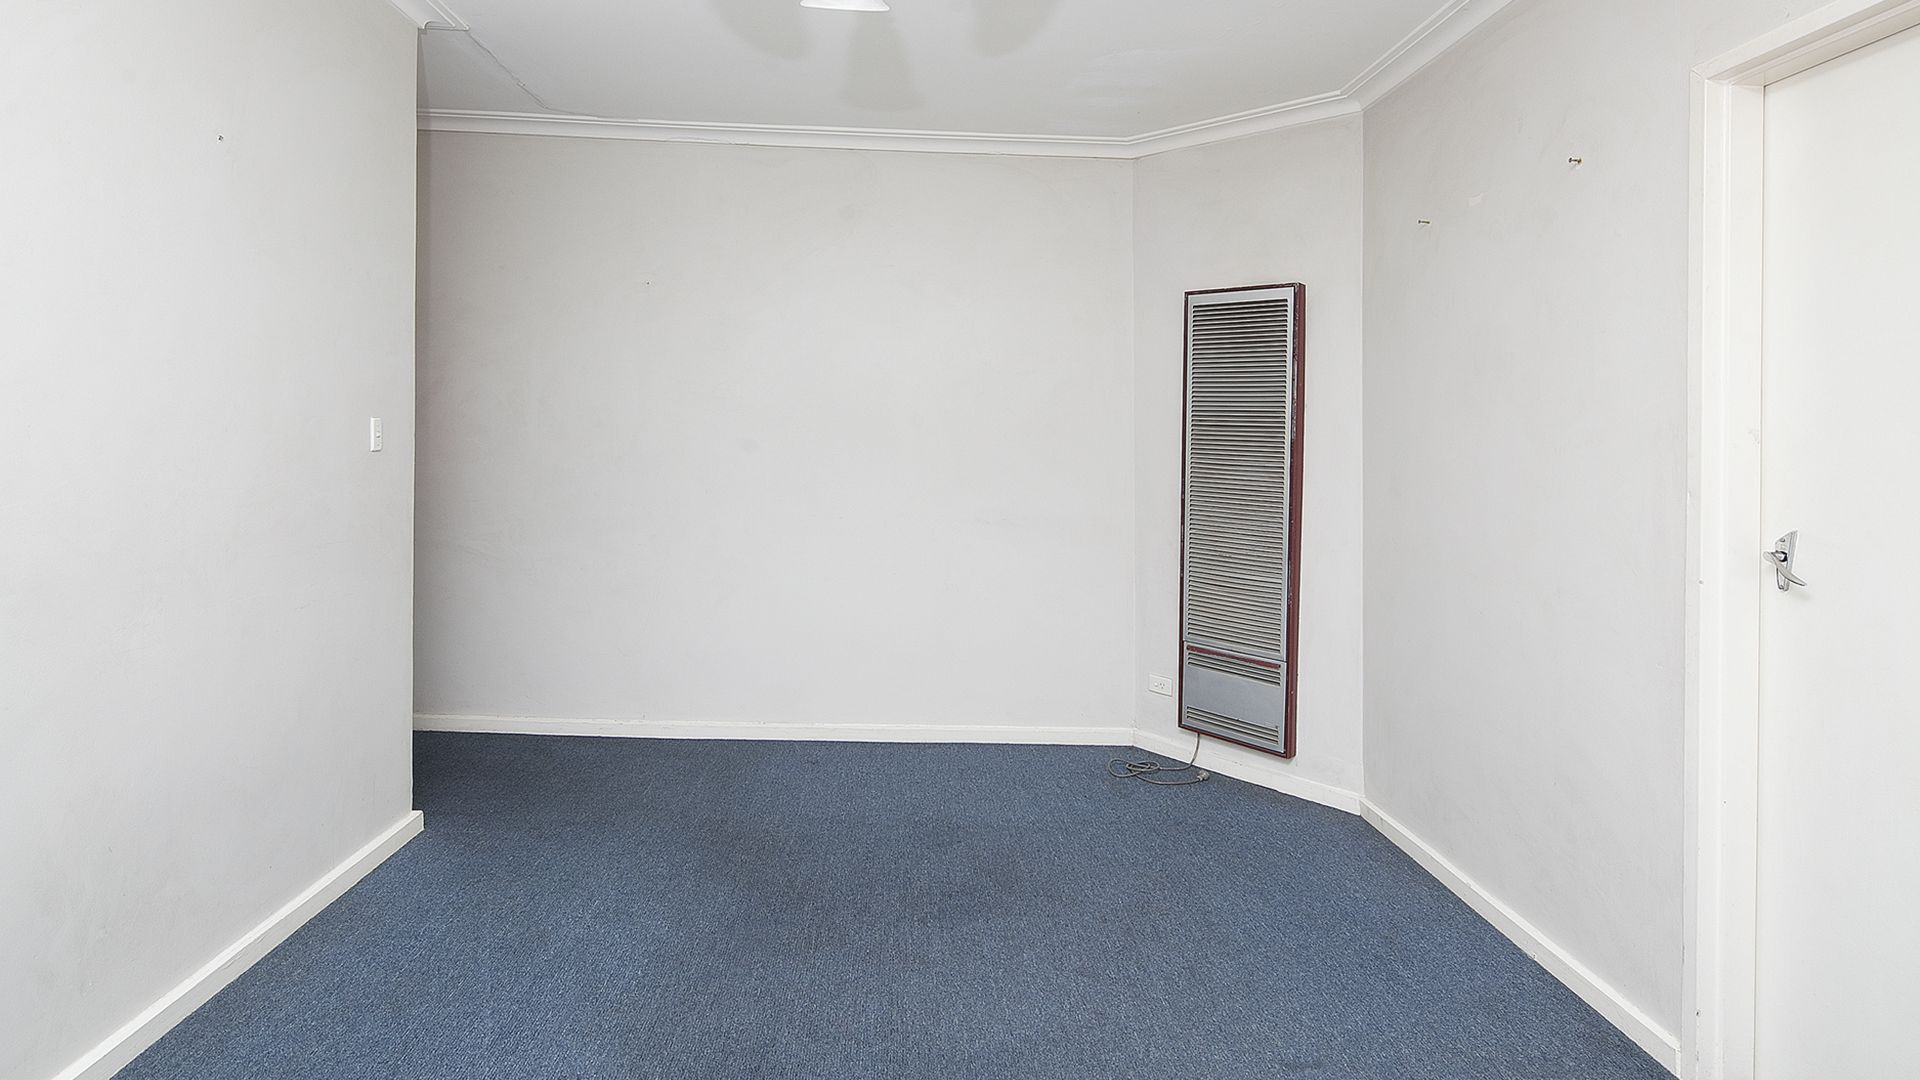 17/40-42 Hemmings Street, Dandenong VIC 3175, Image 2